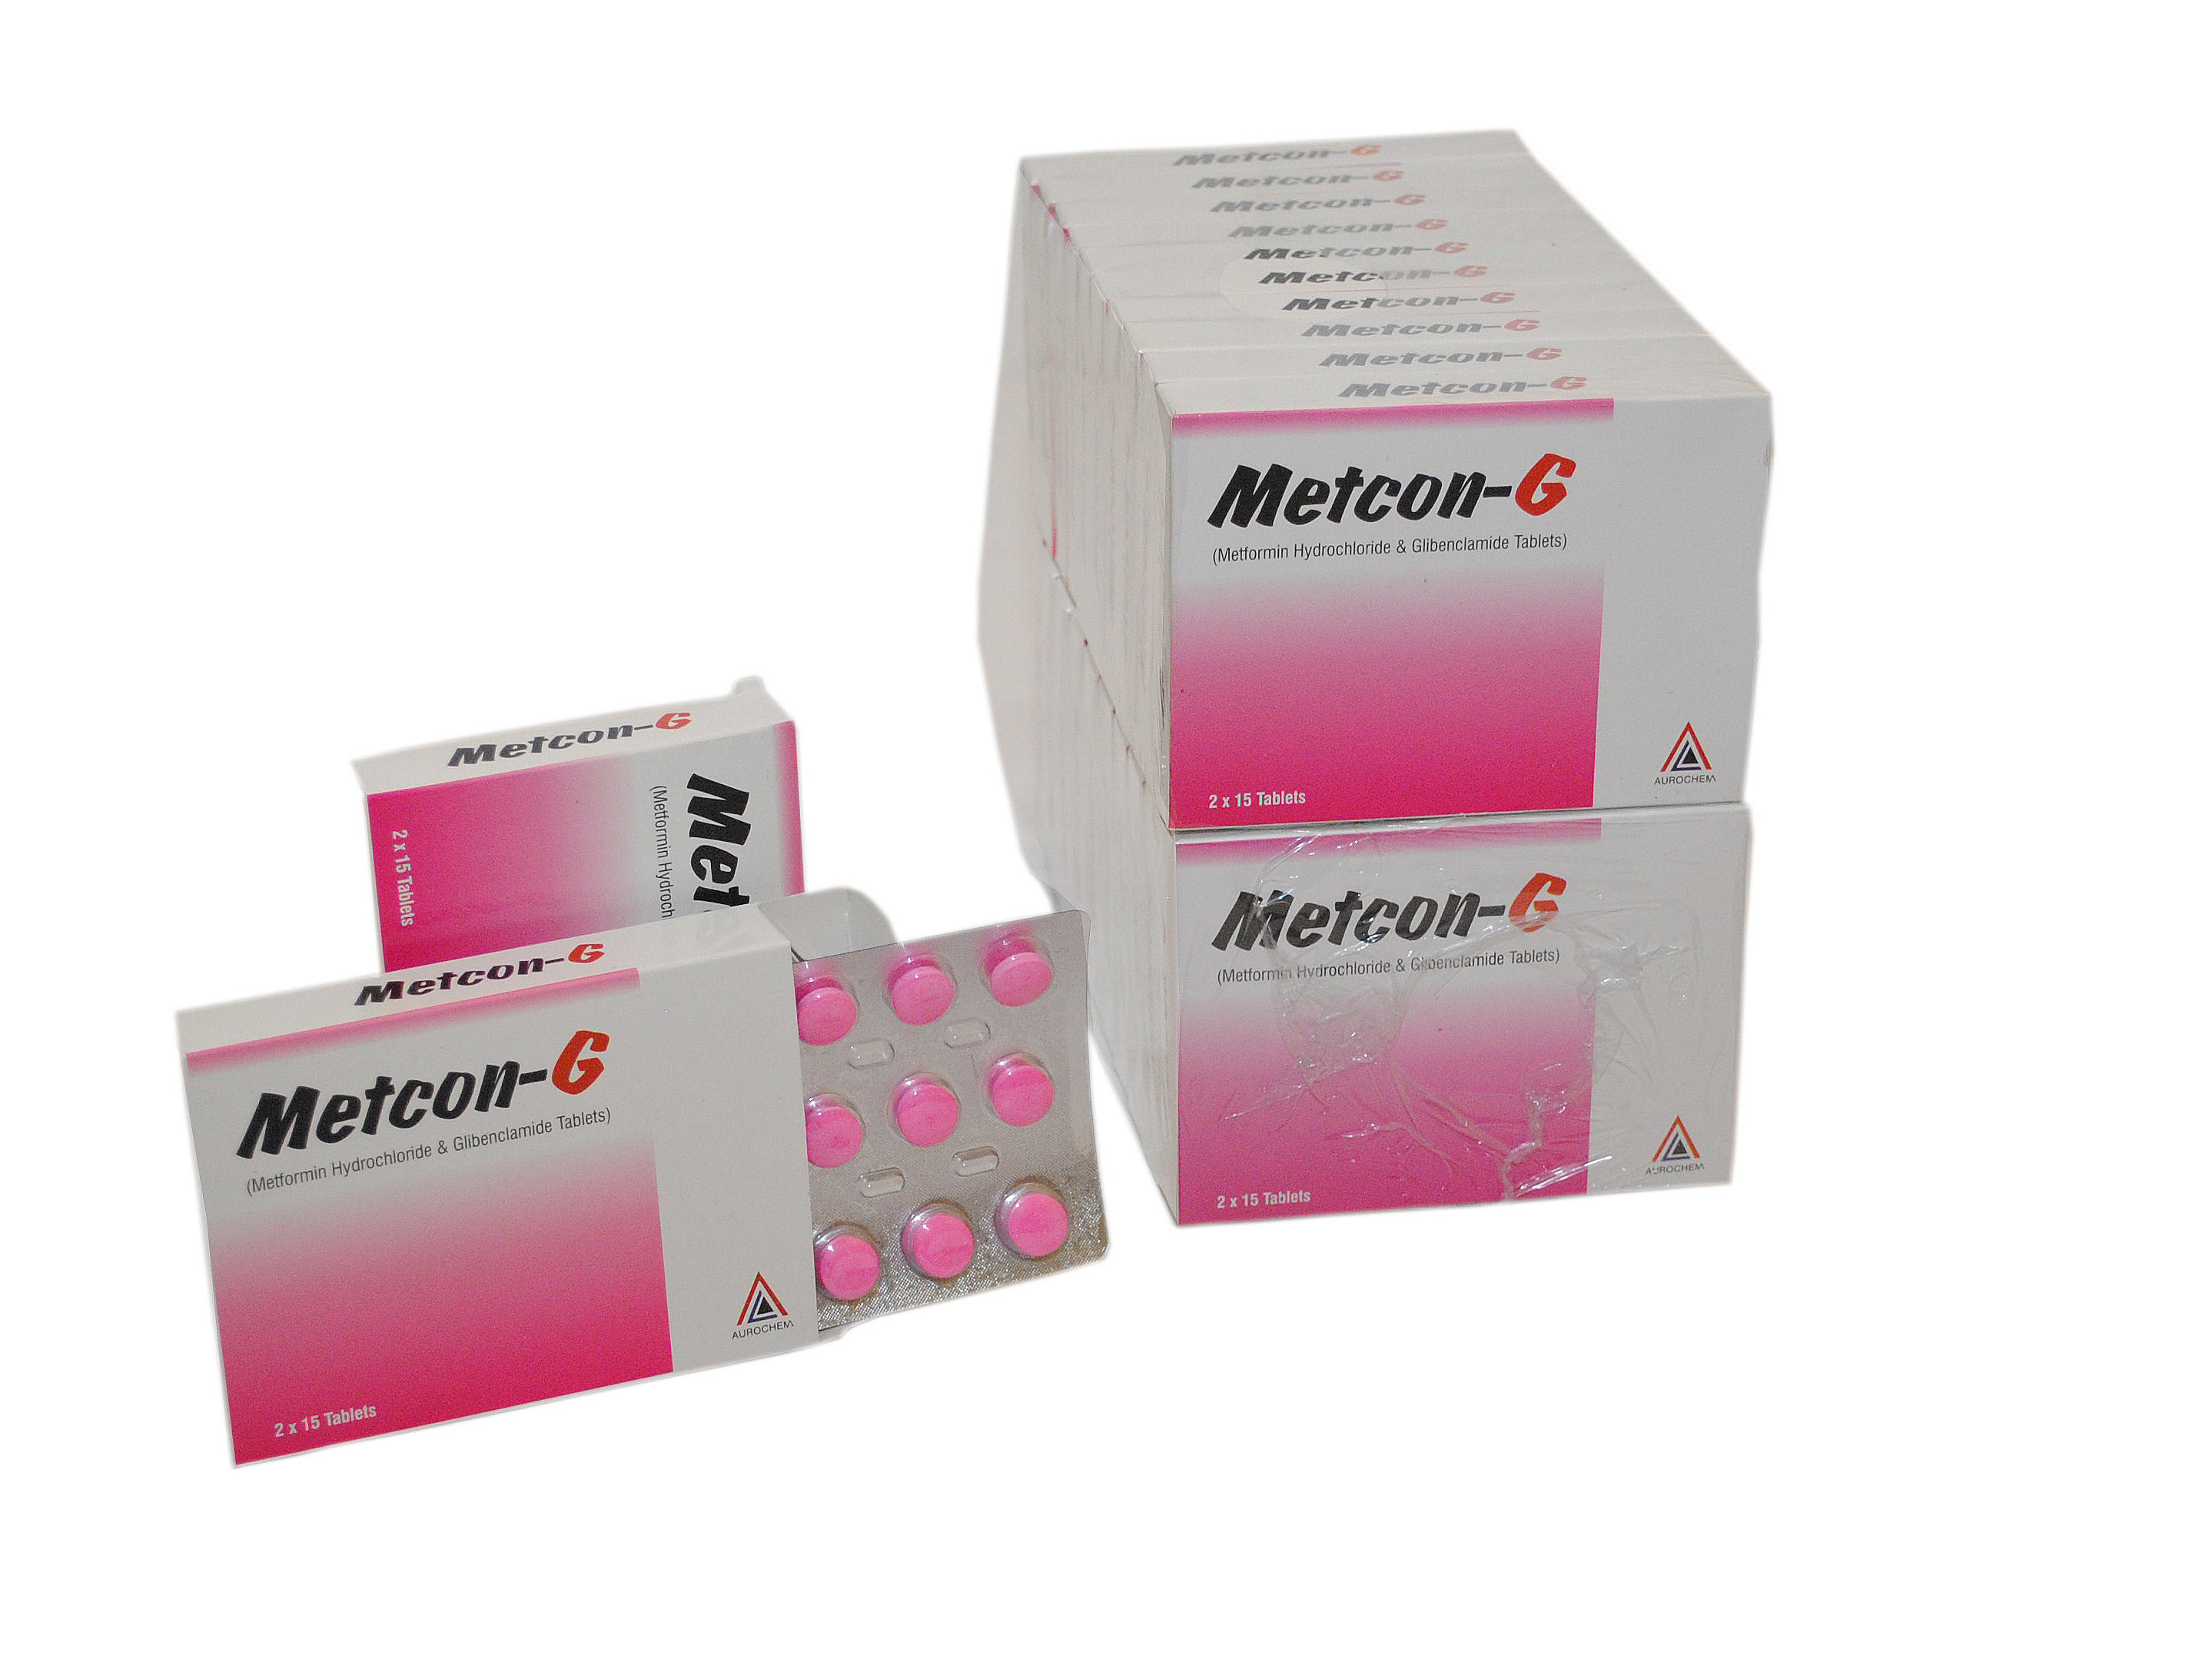 Metformin discount coupons